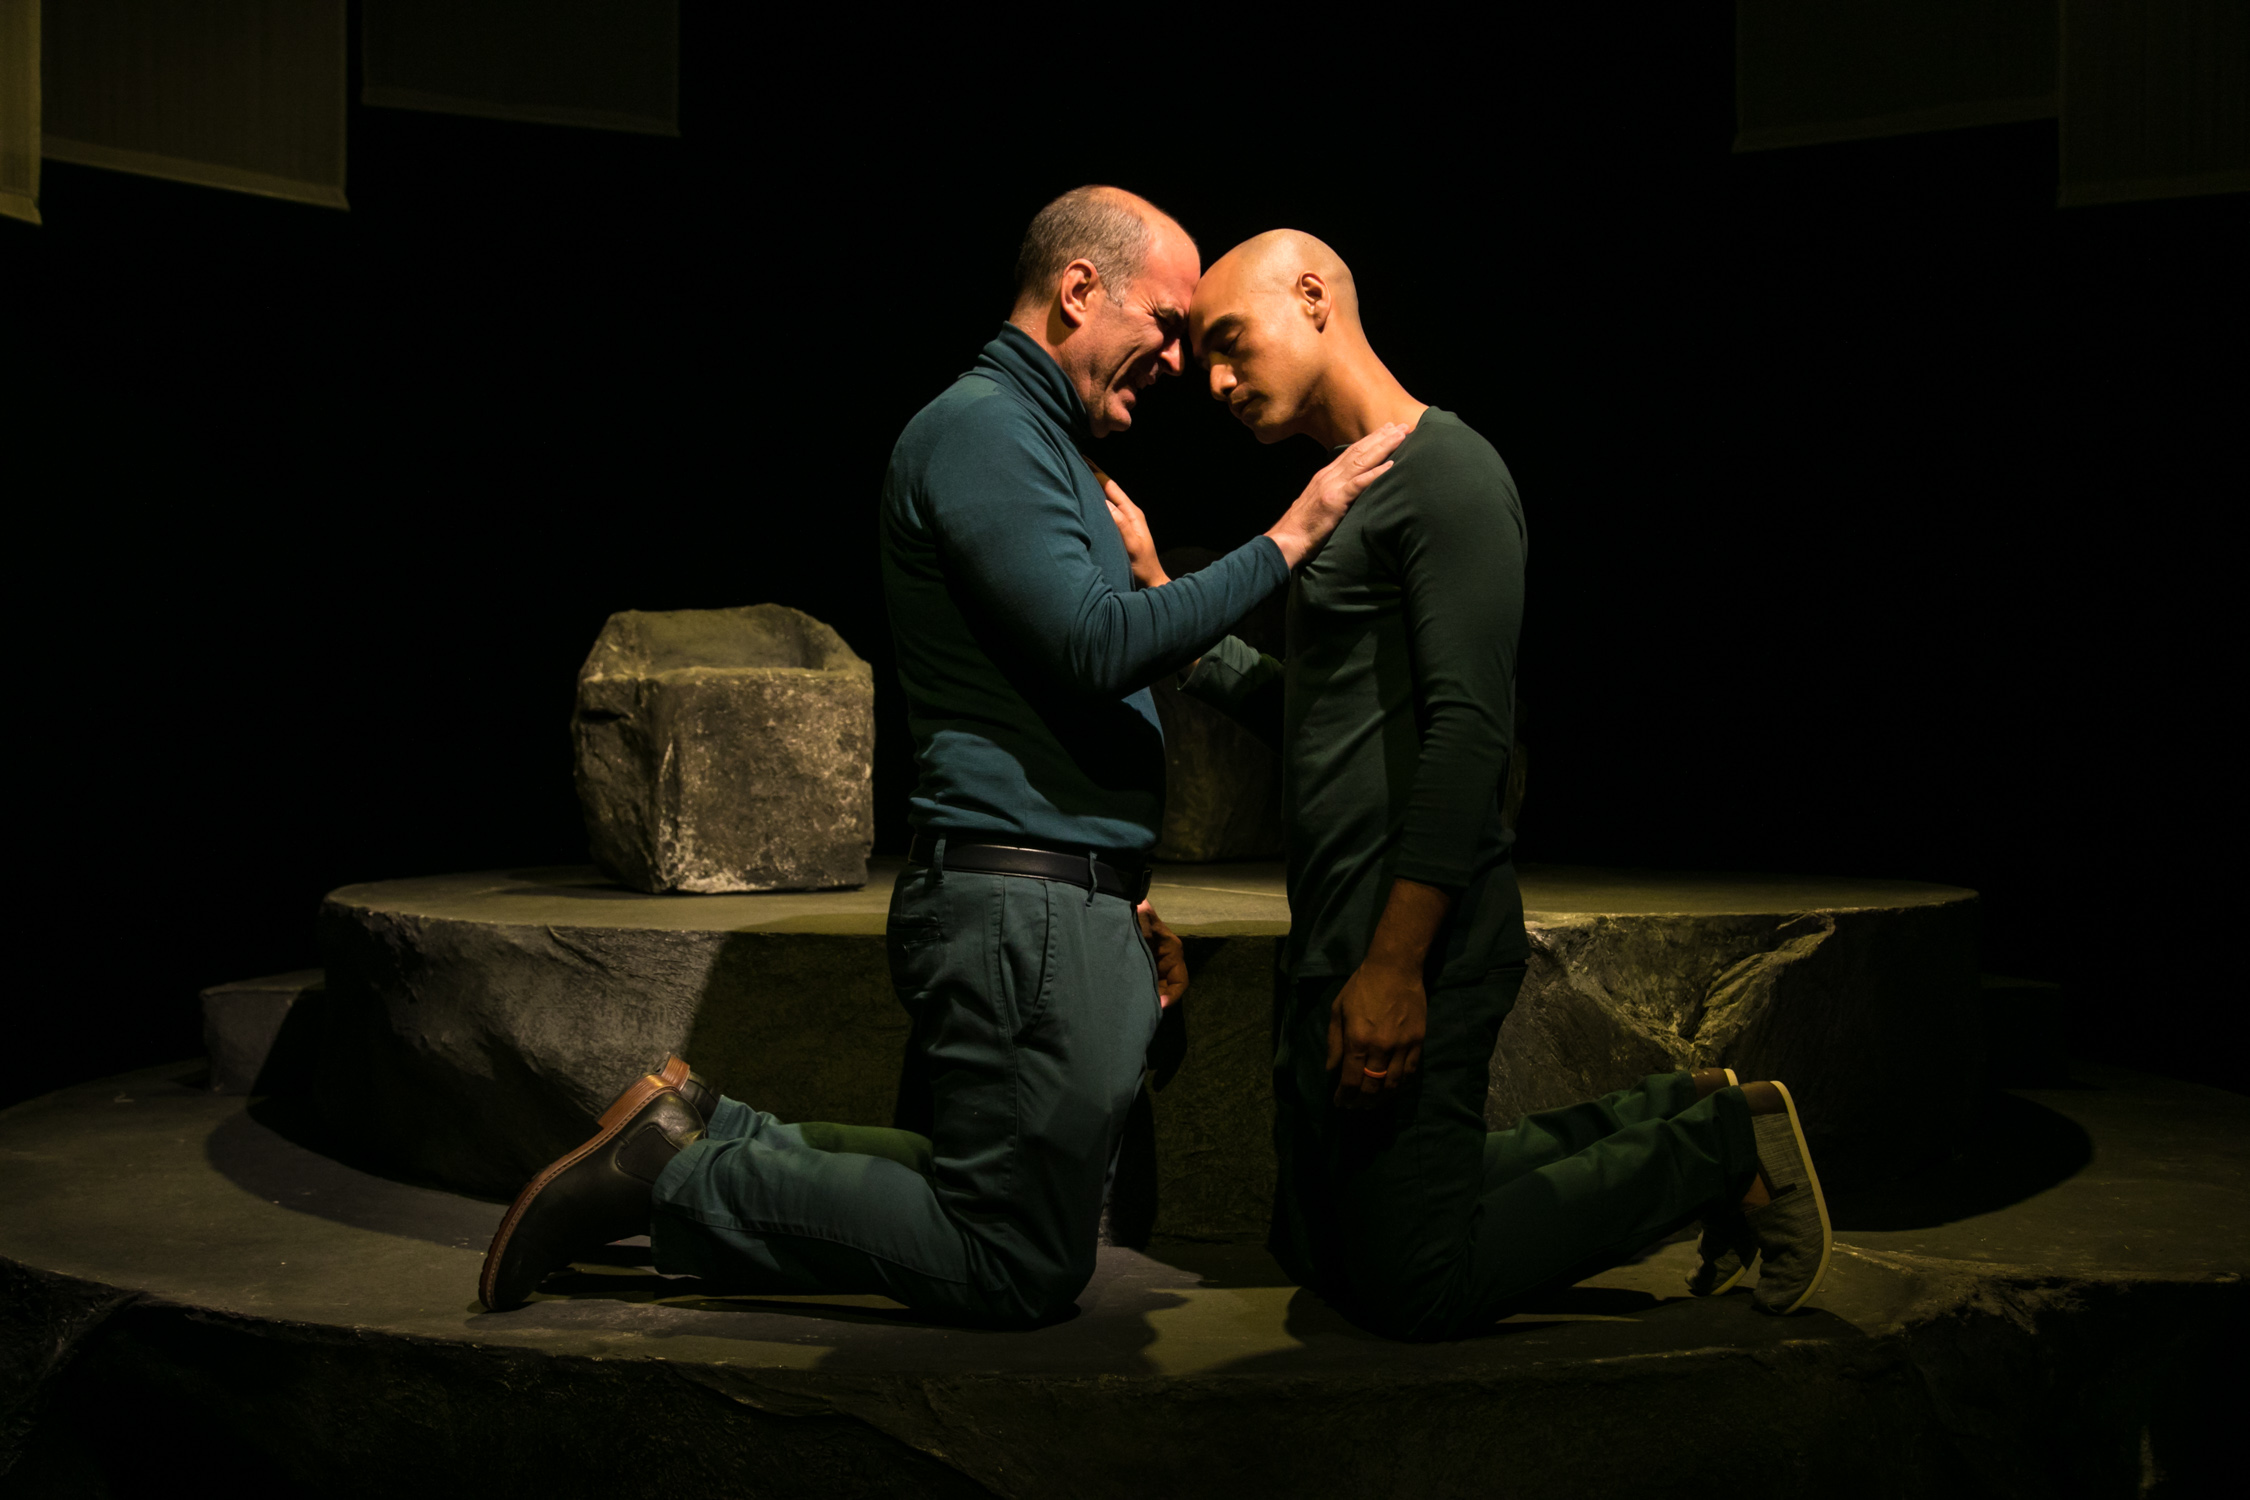 Lawrence Radecker as Dave (left) and Shoresh Alaudini as Gil (right)  Photo by Cheshire Isaacs